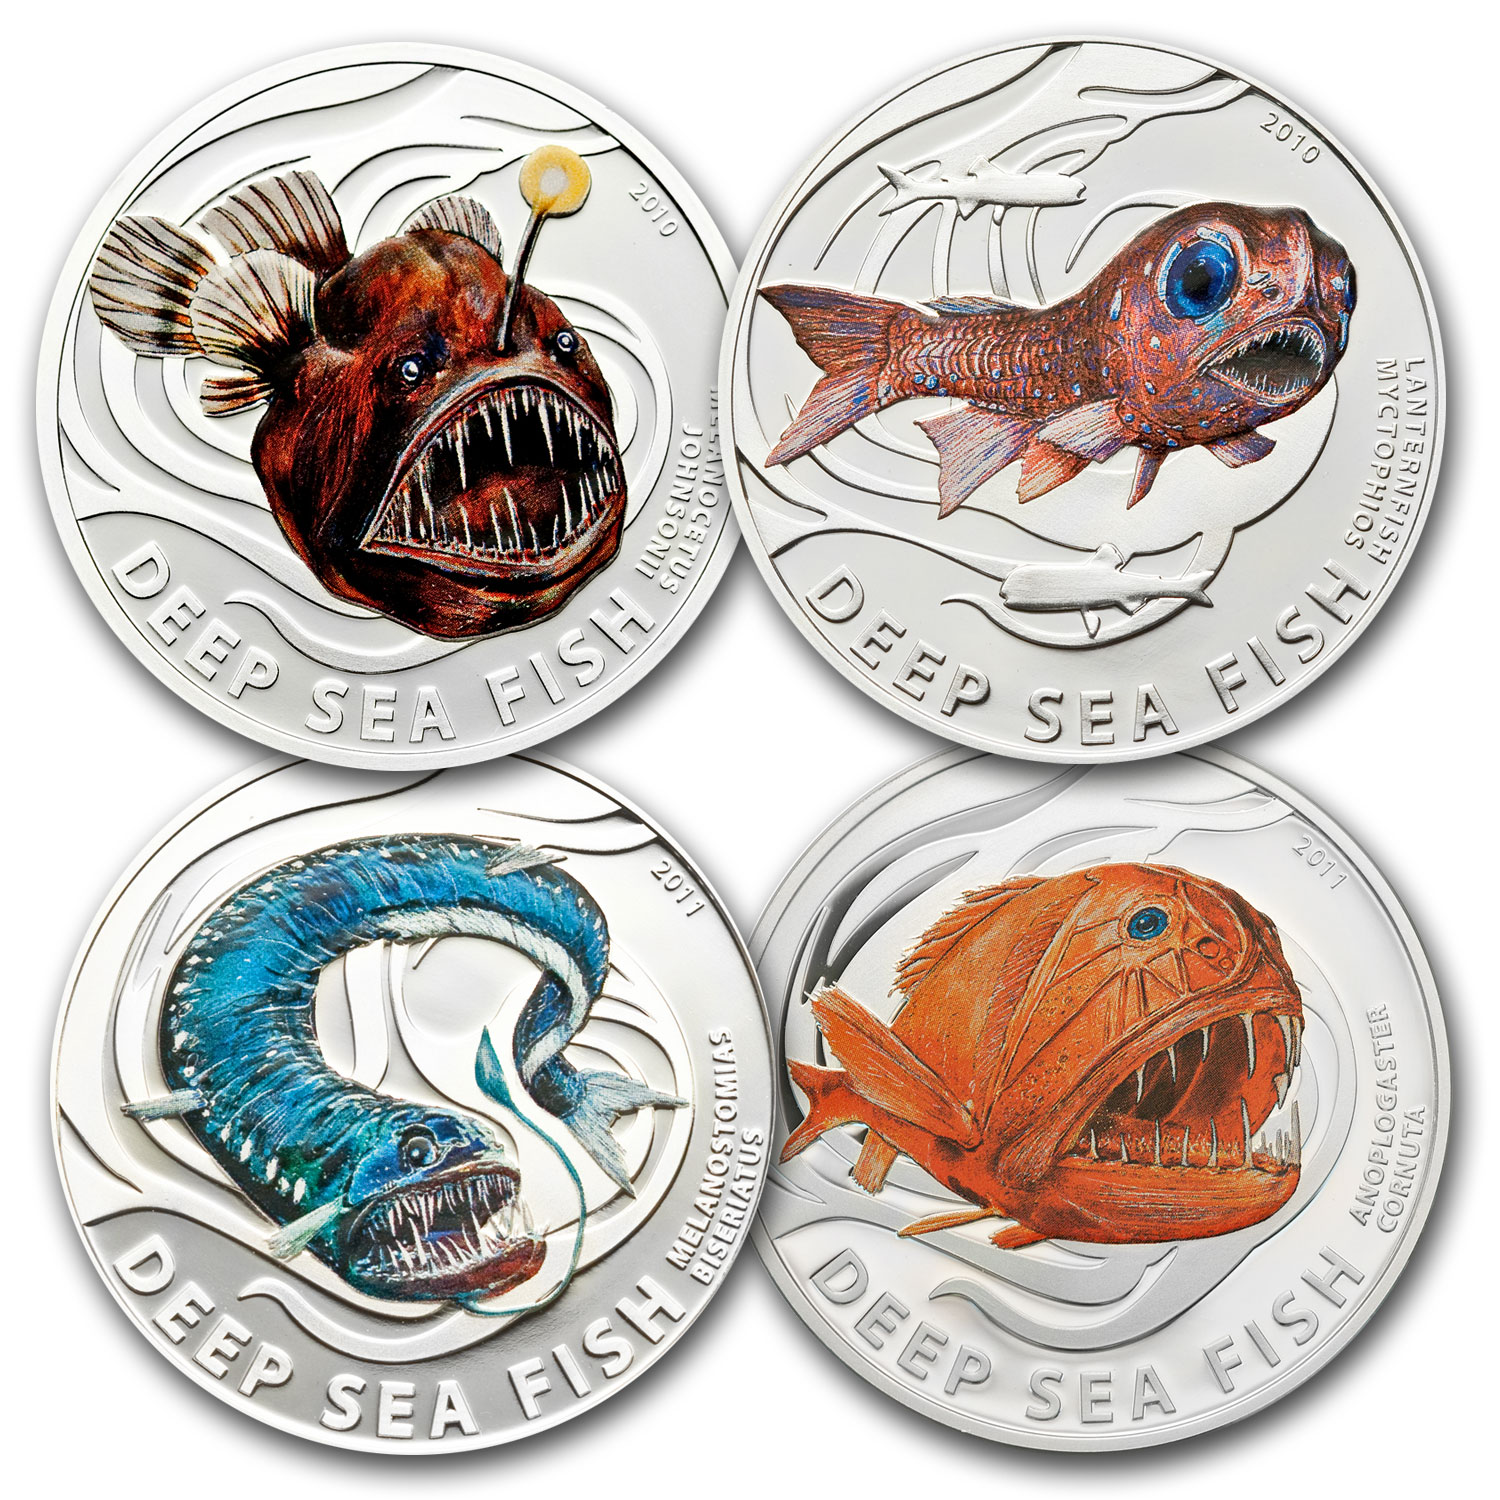 2010-2011 4-Coin Silver Pitcairn Islands Deep Sea Fish Proof Set